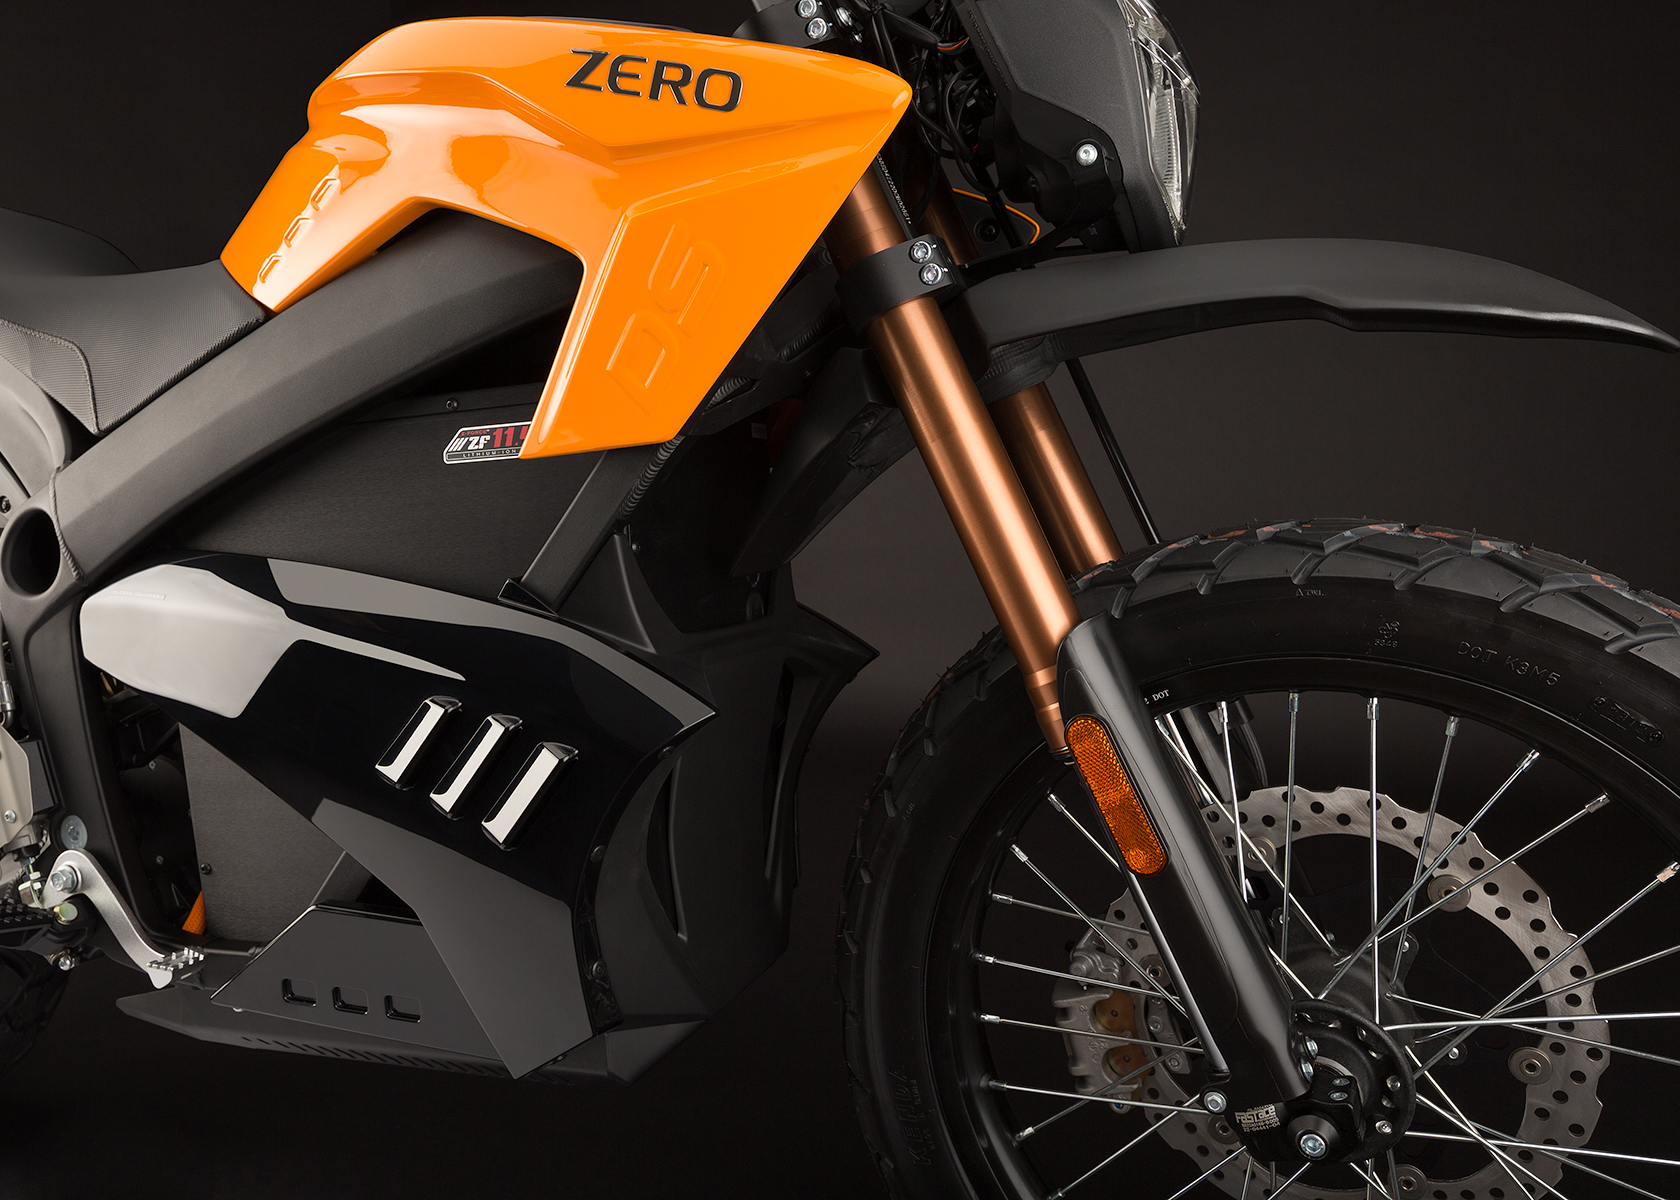 2013 Zero DS Electric Motorcycle: Front Fork